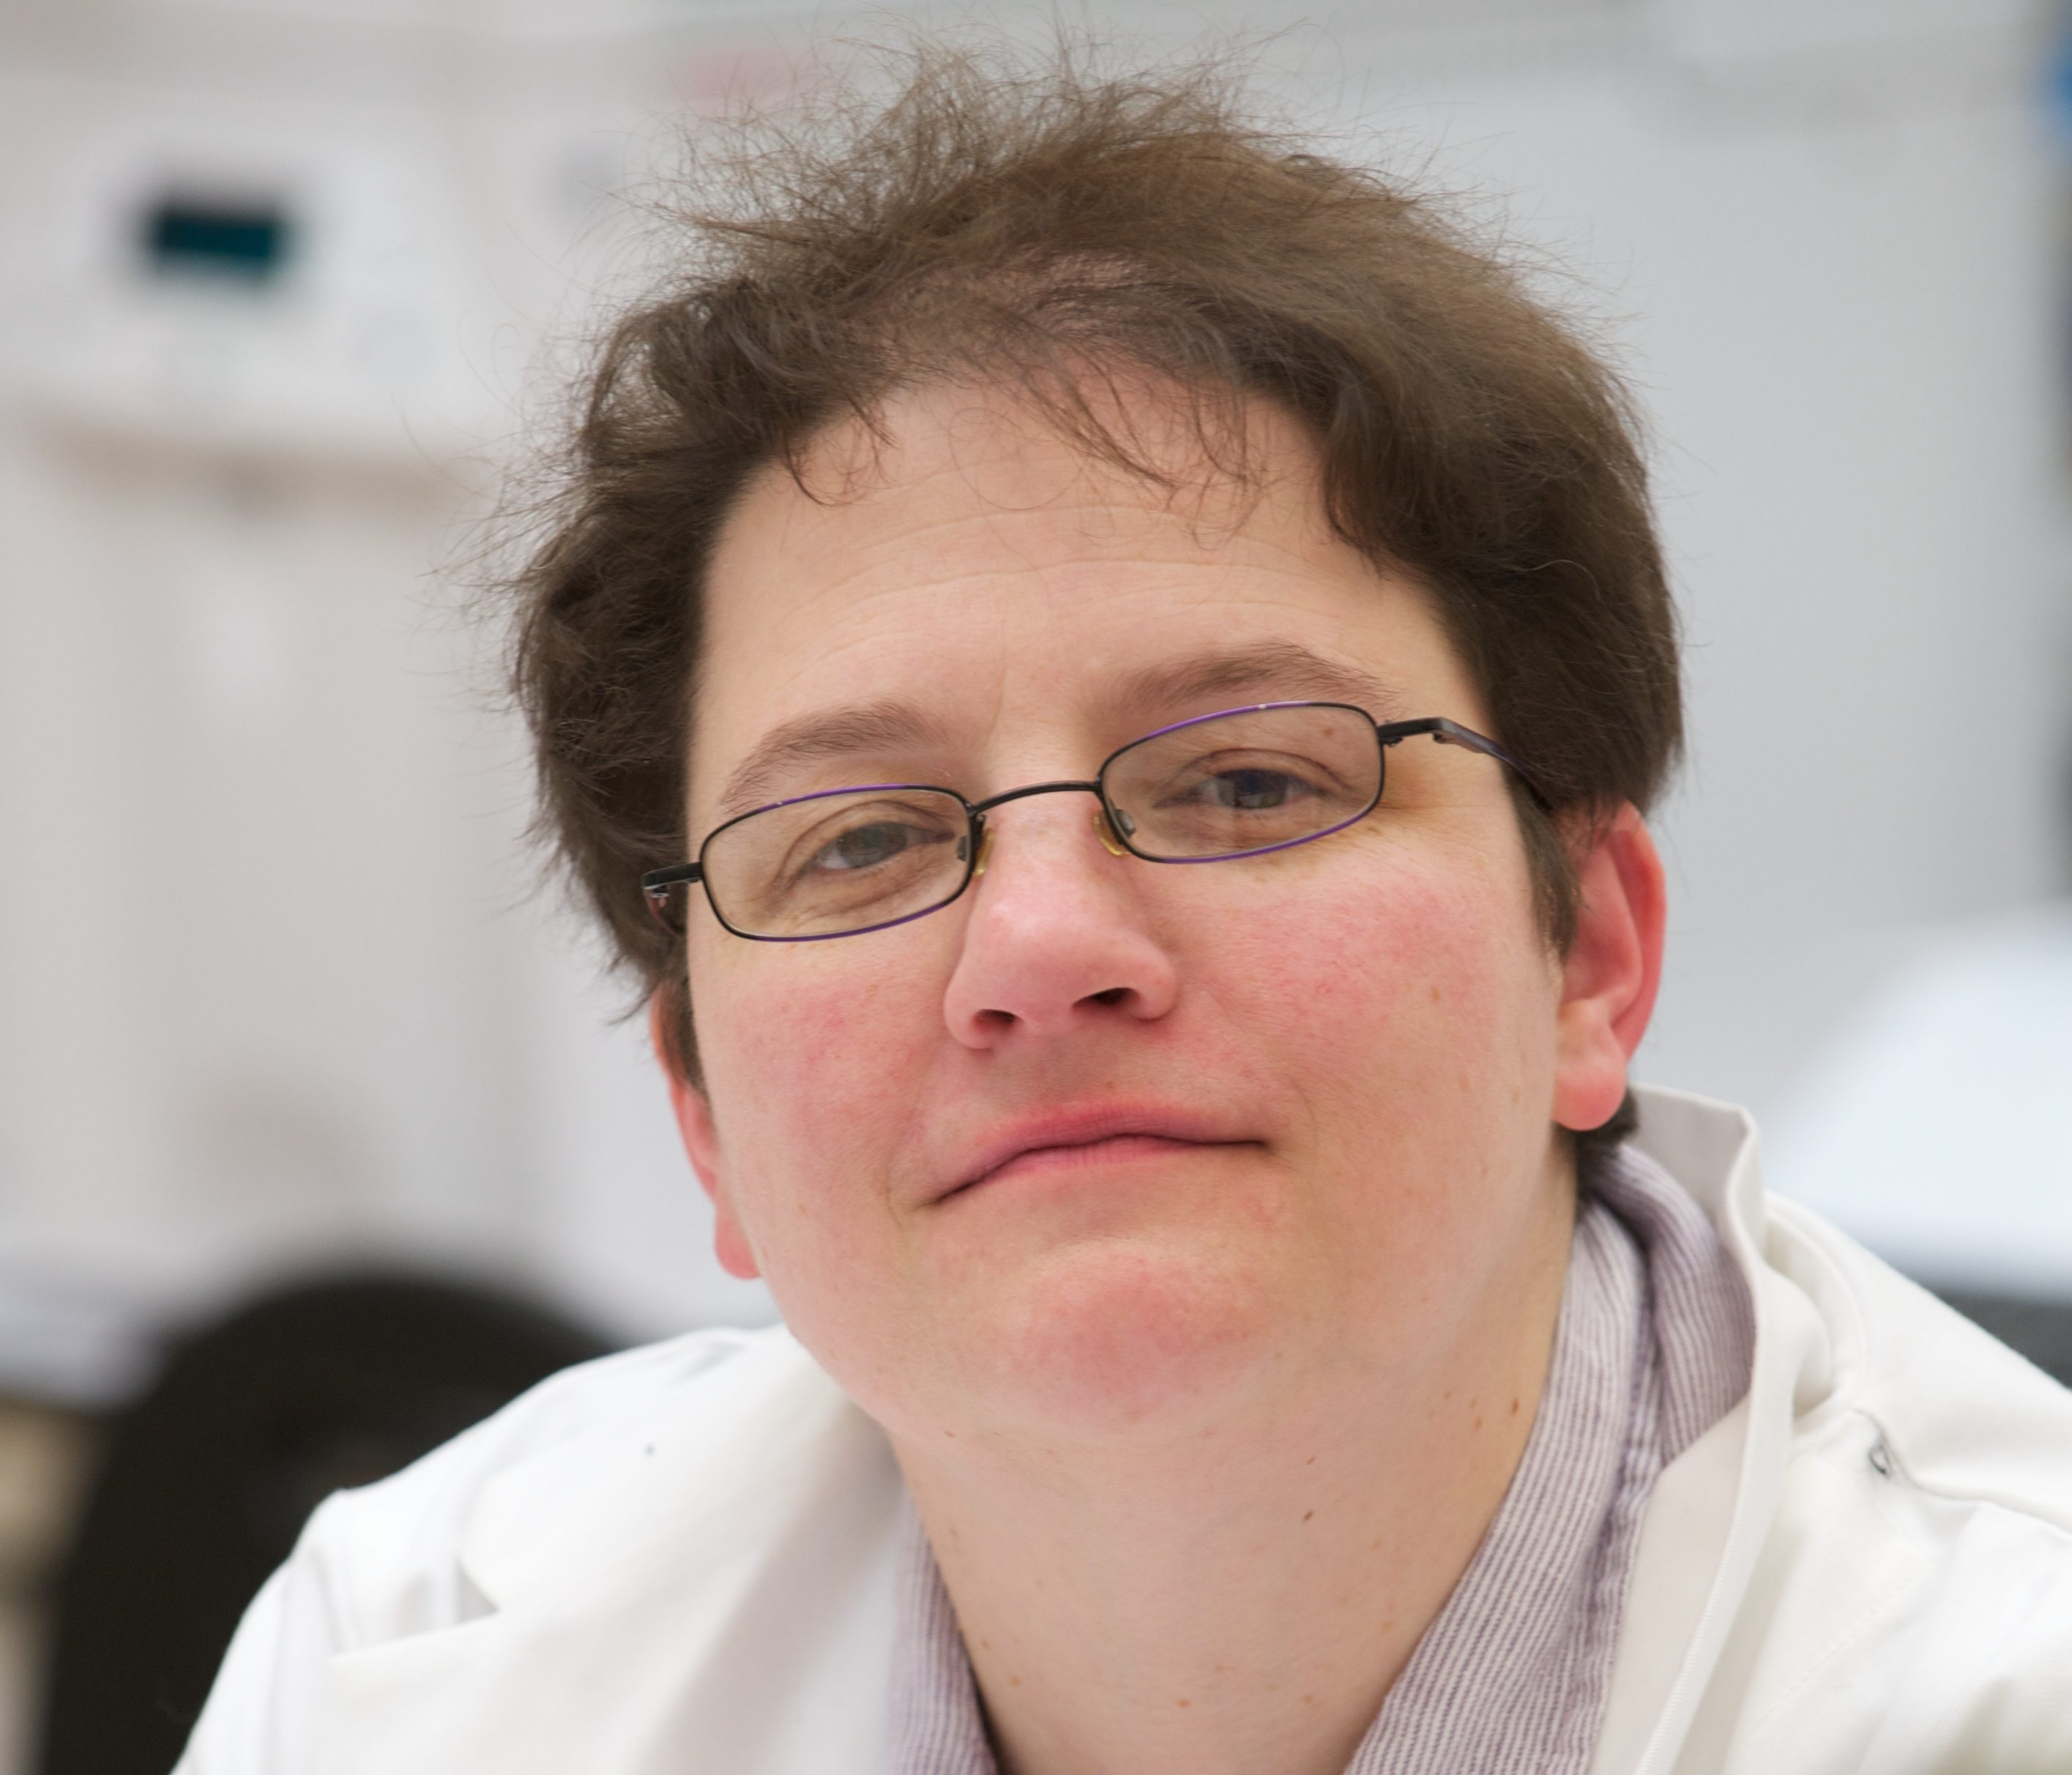 Forensic Science Professor Niamh Nic Daéid at Dundee University.